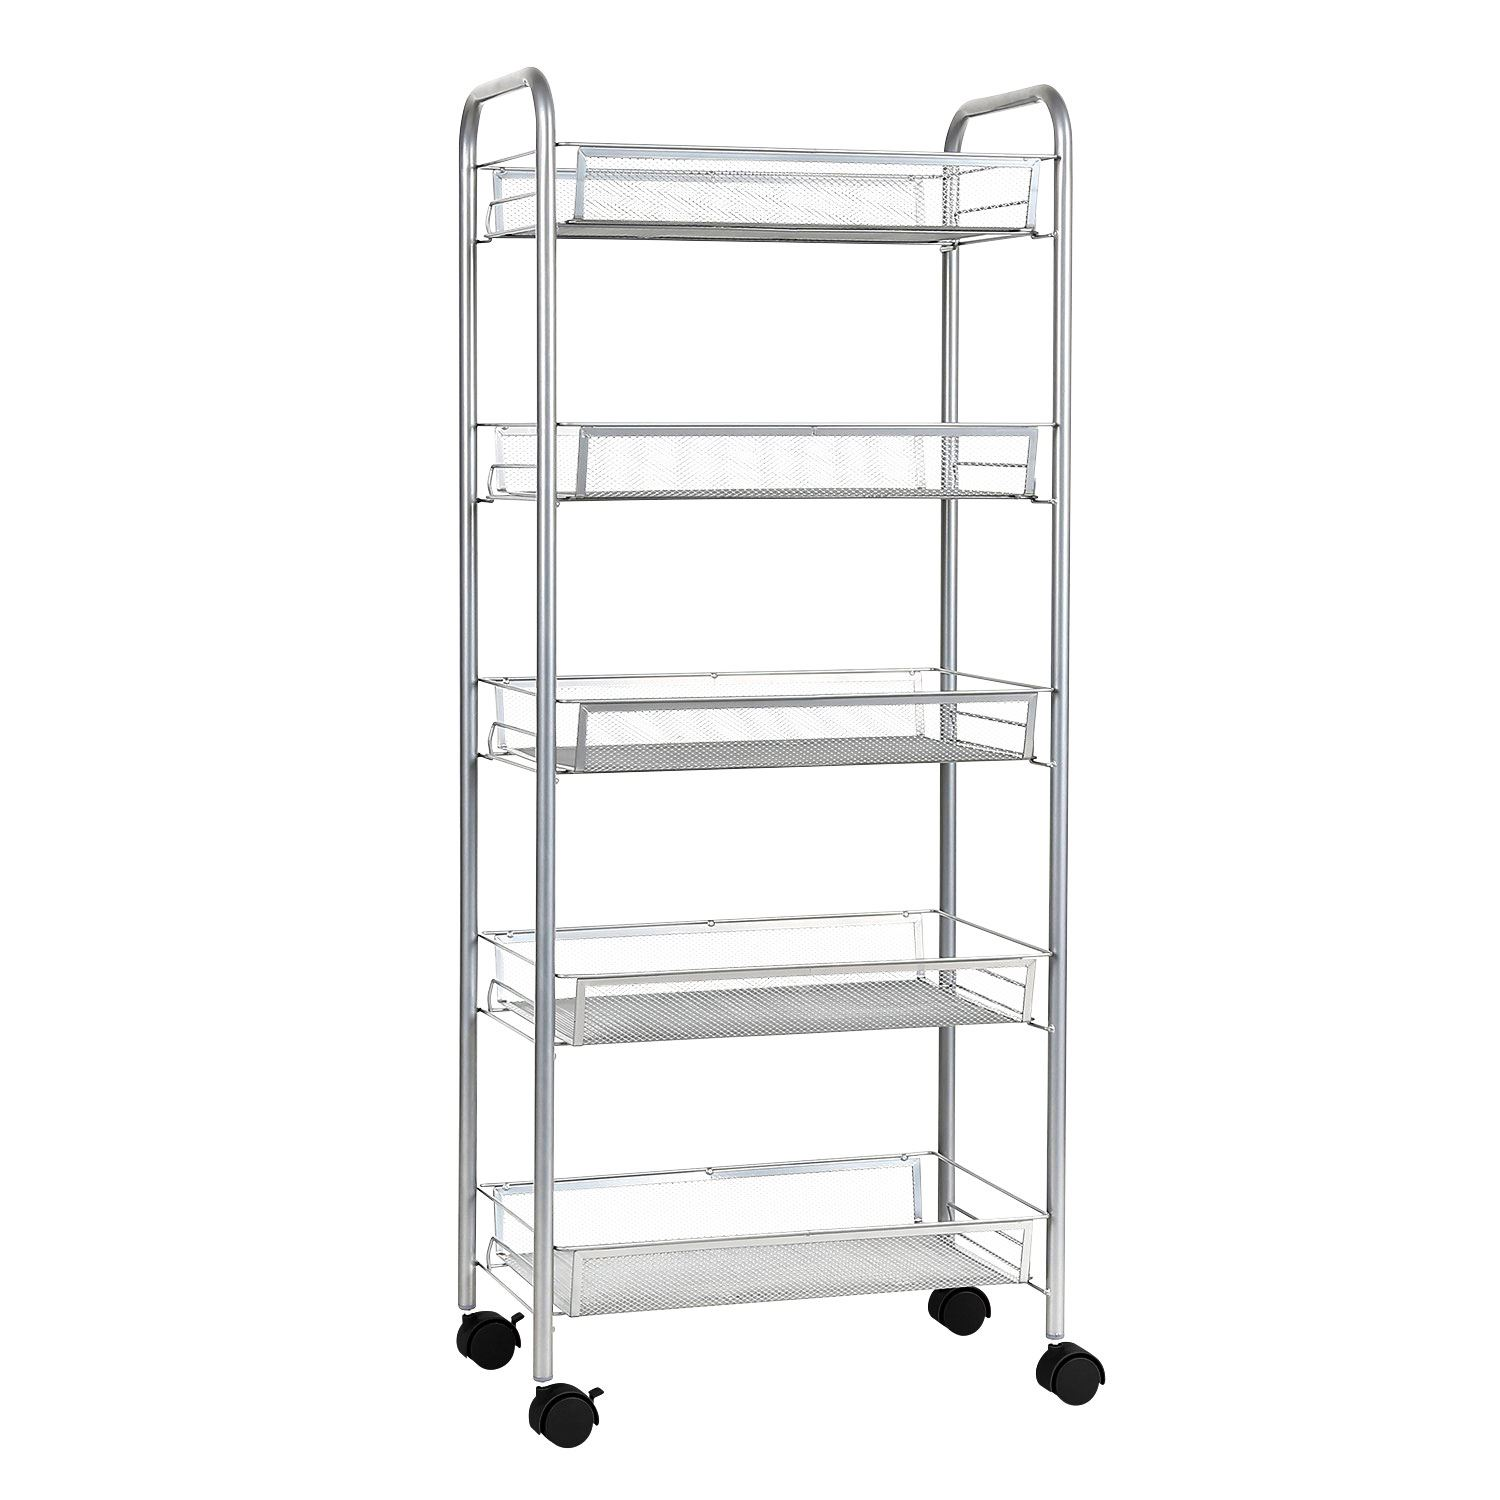 3 4 5 Tier Metal Rolling Wheel Kitchen Trolley Storage